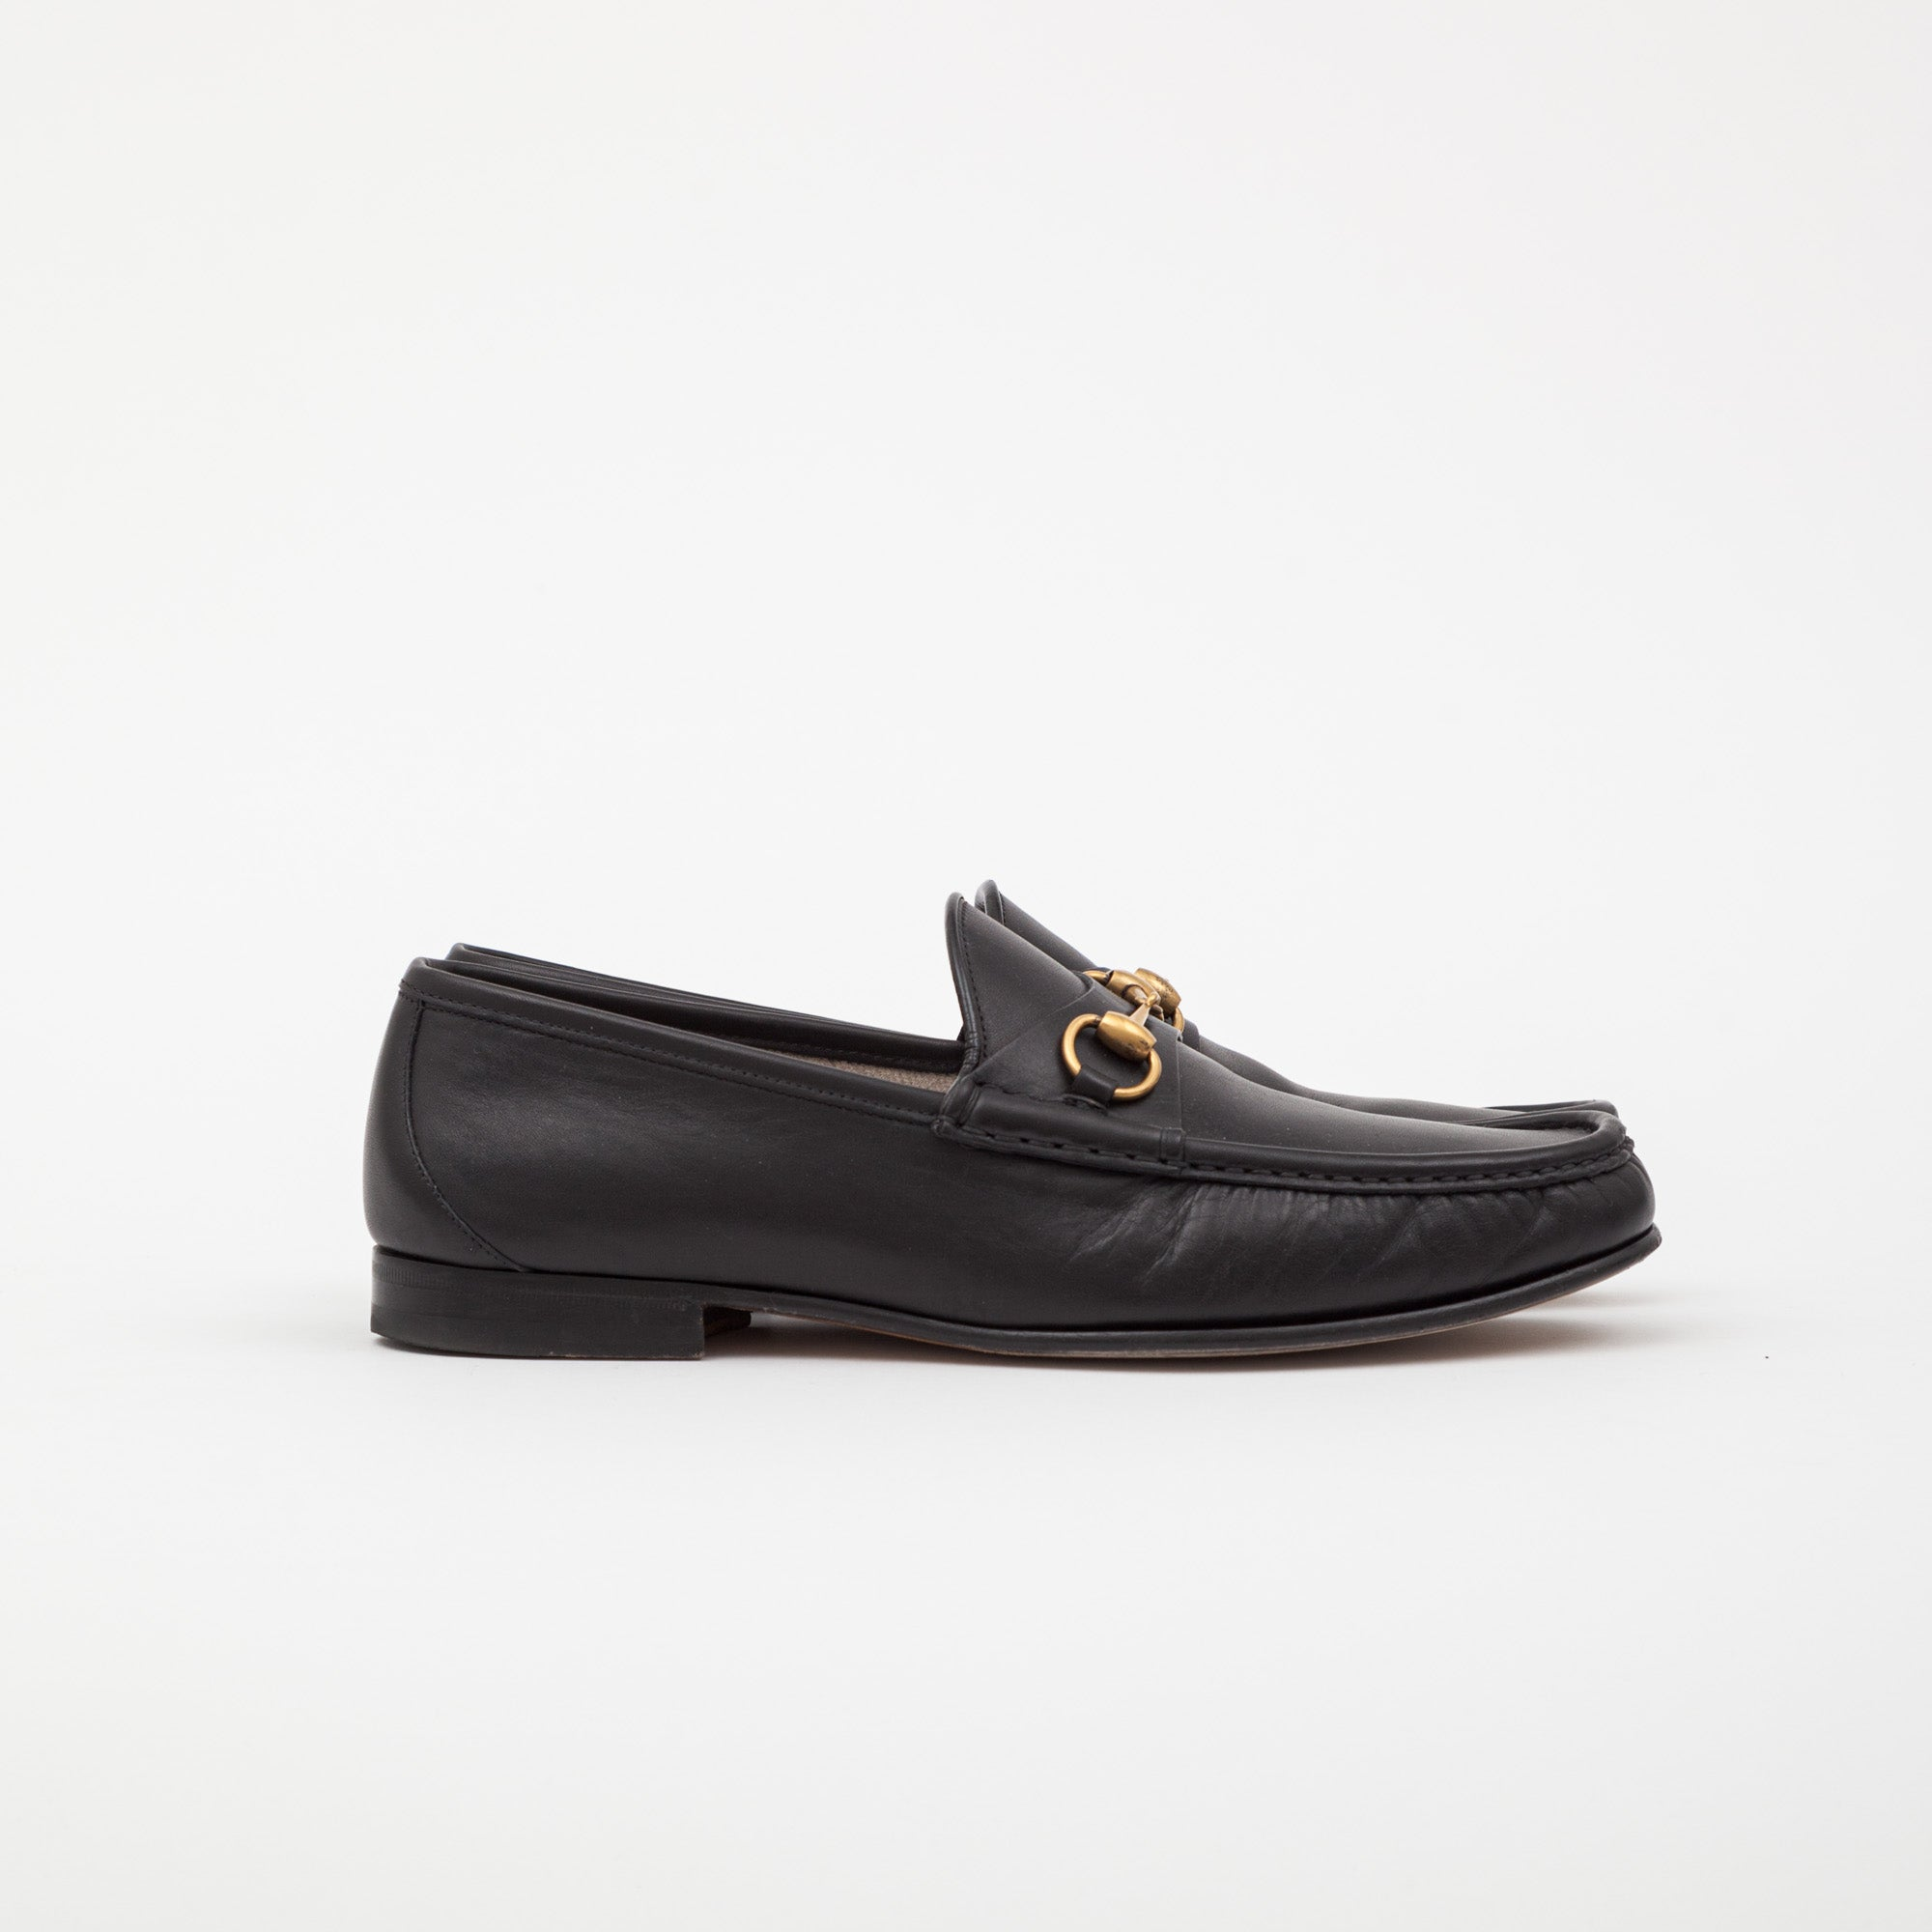 Gucci Jordan Leather Loafers